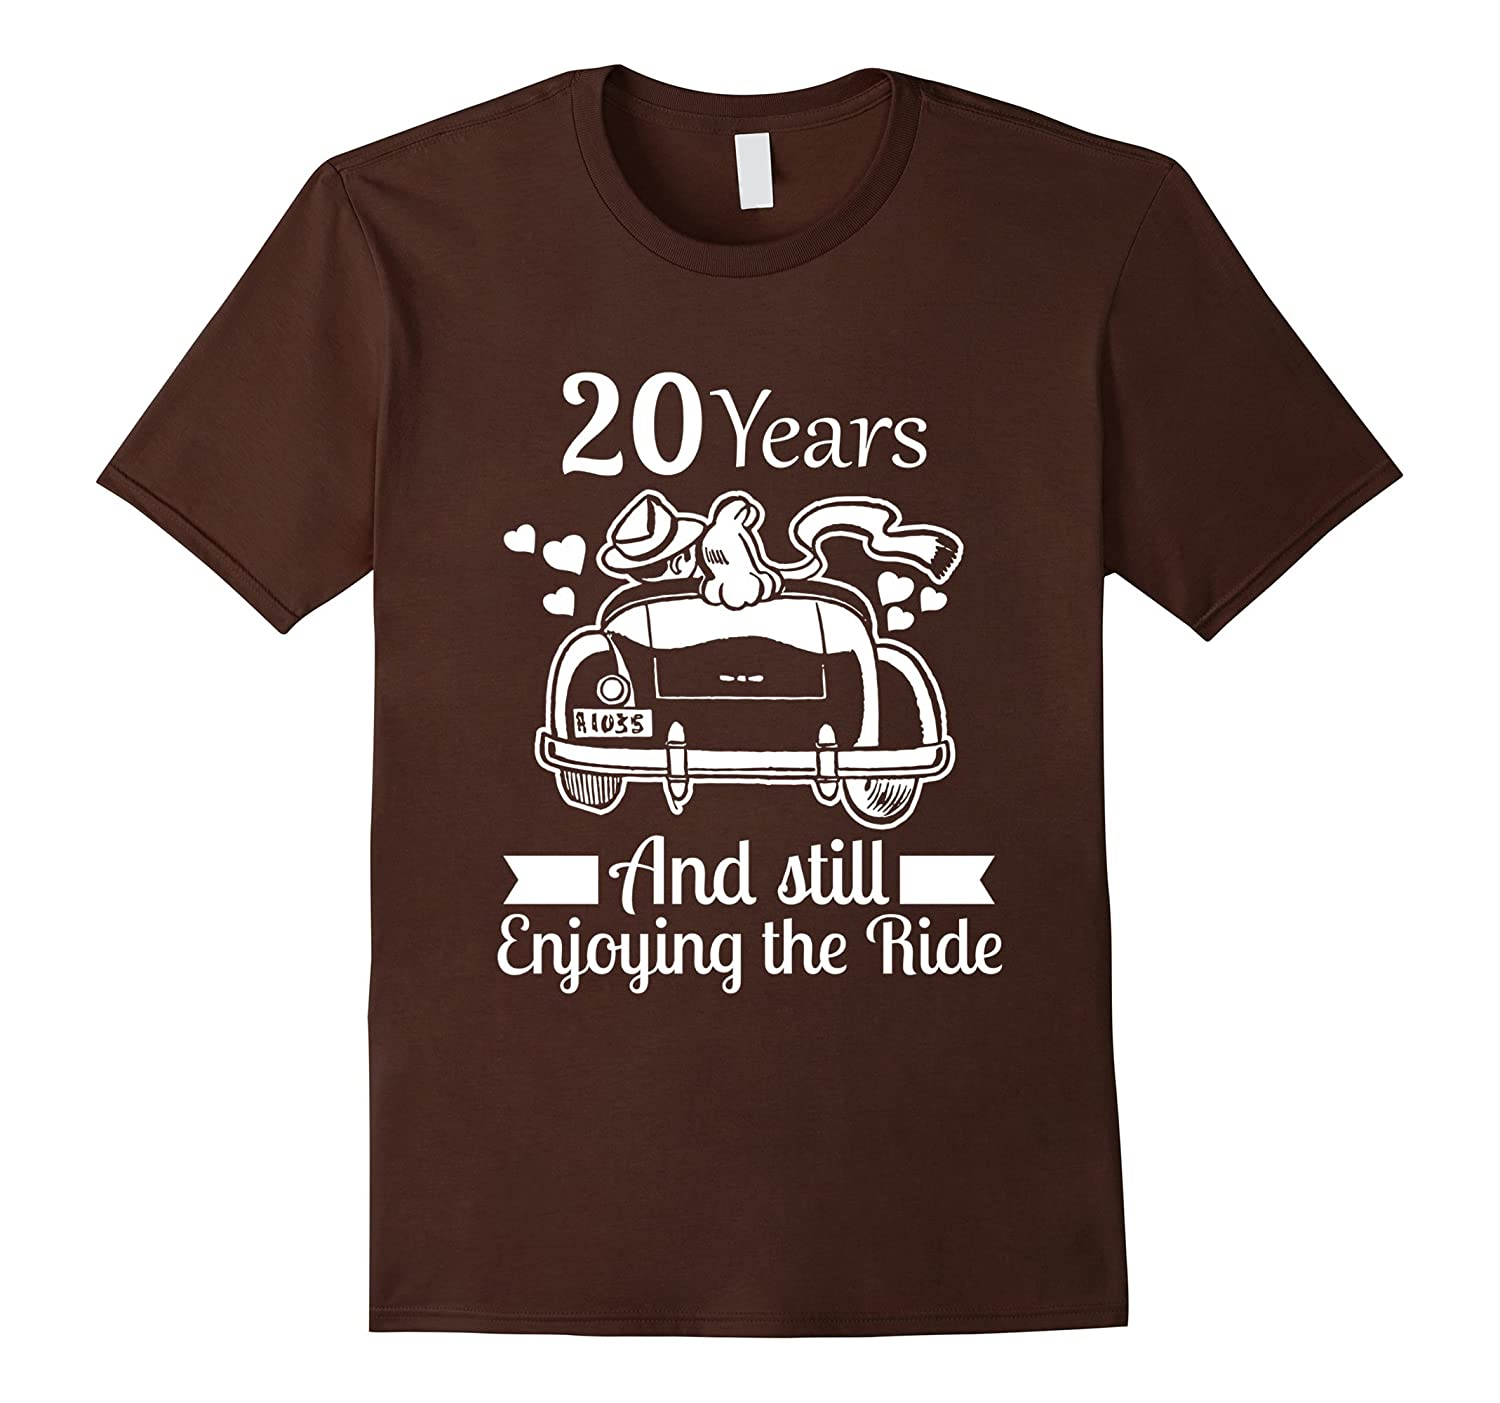 20th Wedding Anniversary Relationship Gifts Men Women Shirt Th Teehelen